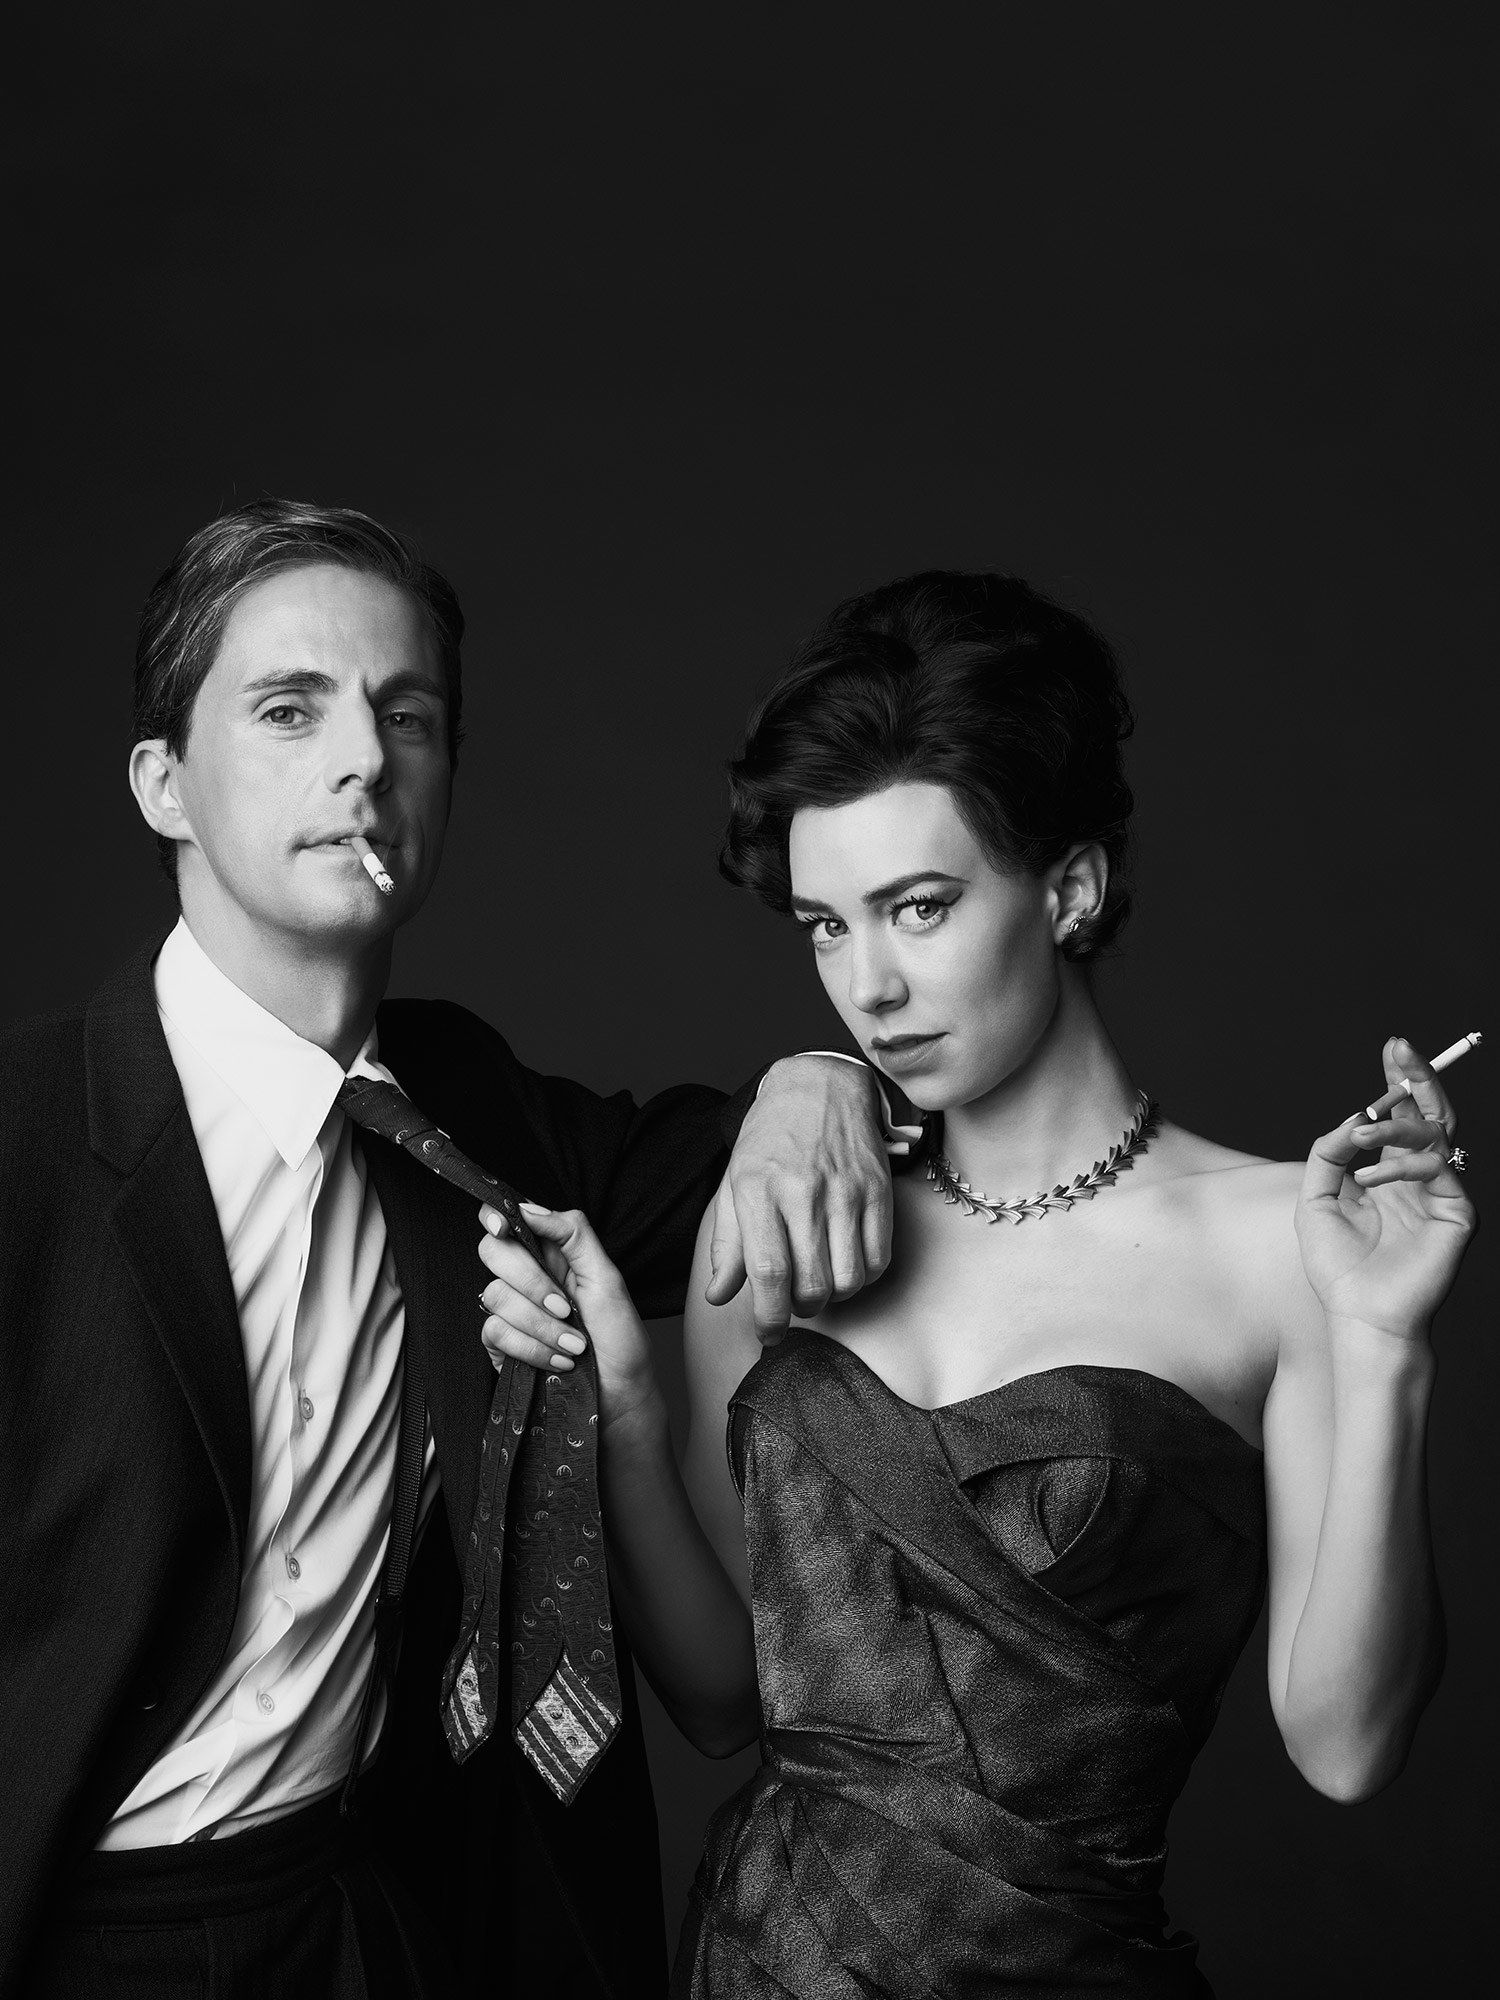 Antony Armstrong Jones 1st Earl Of Snowdon Spouse The Crown Exclusive Vanessa Kirby And Matthew Goode As Princess Margaret And Antony Armstrong Jones The Crown Season Vanessa Kirby The Crown Vanessa Kirby